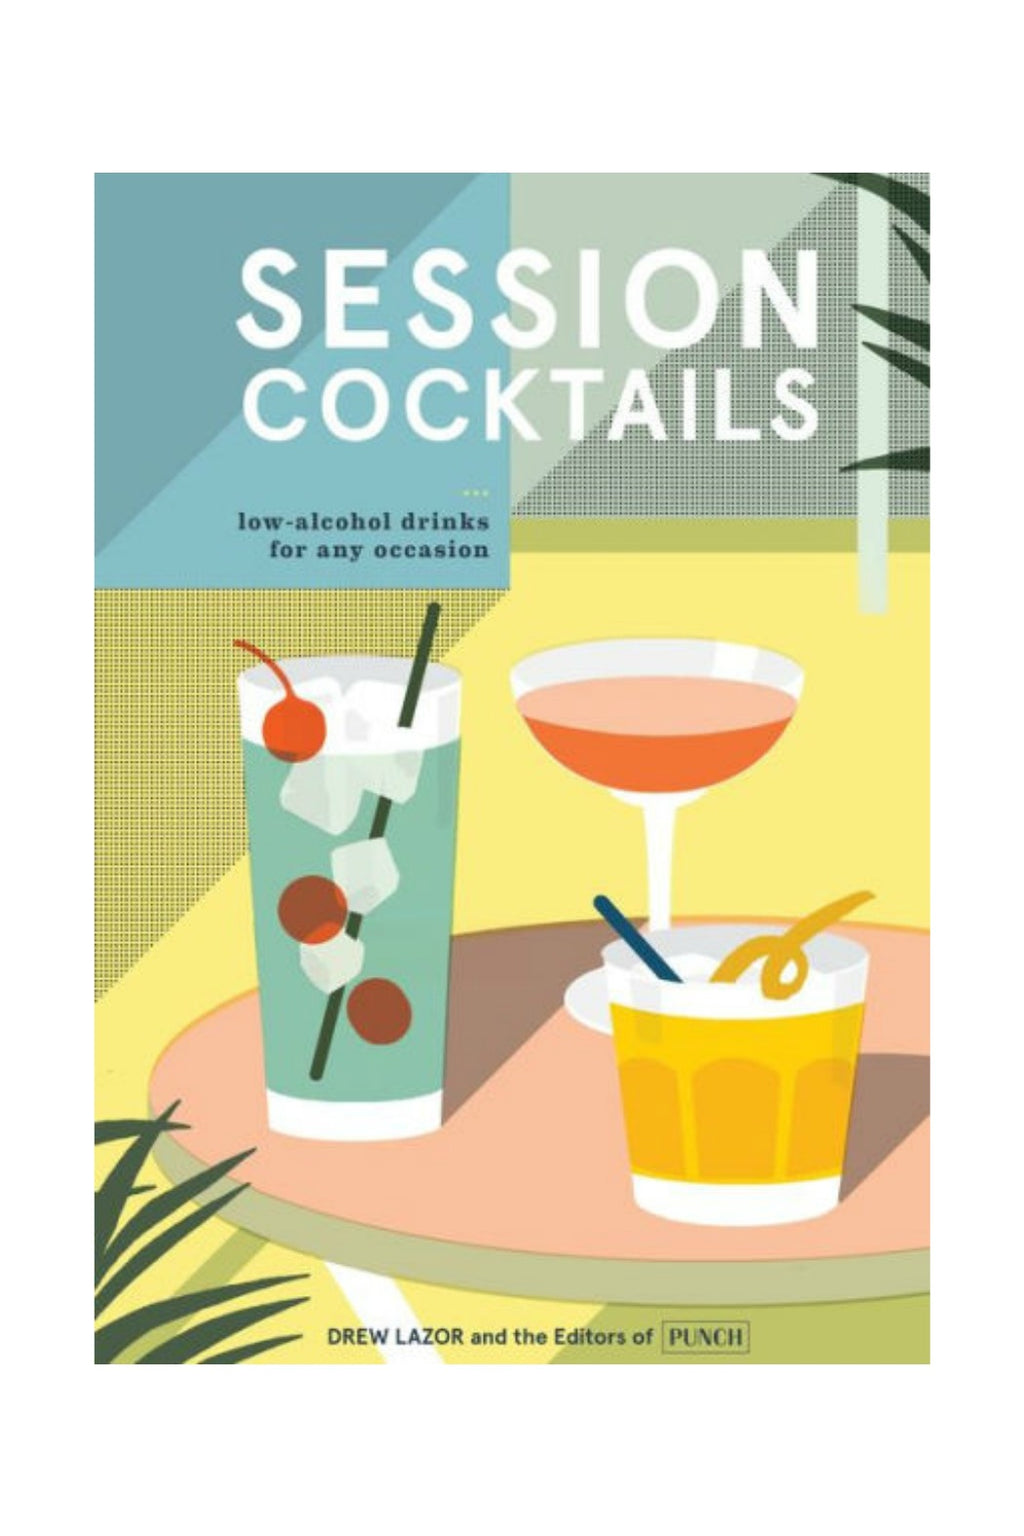 Random House Session Cocktails: Low-Alcohol Drinks for Any Occasion by Drew Lazor, Editors of PUNCH